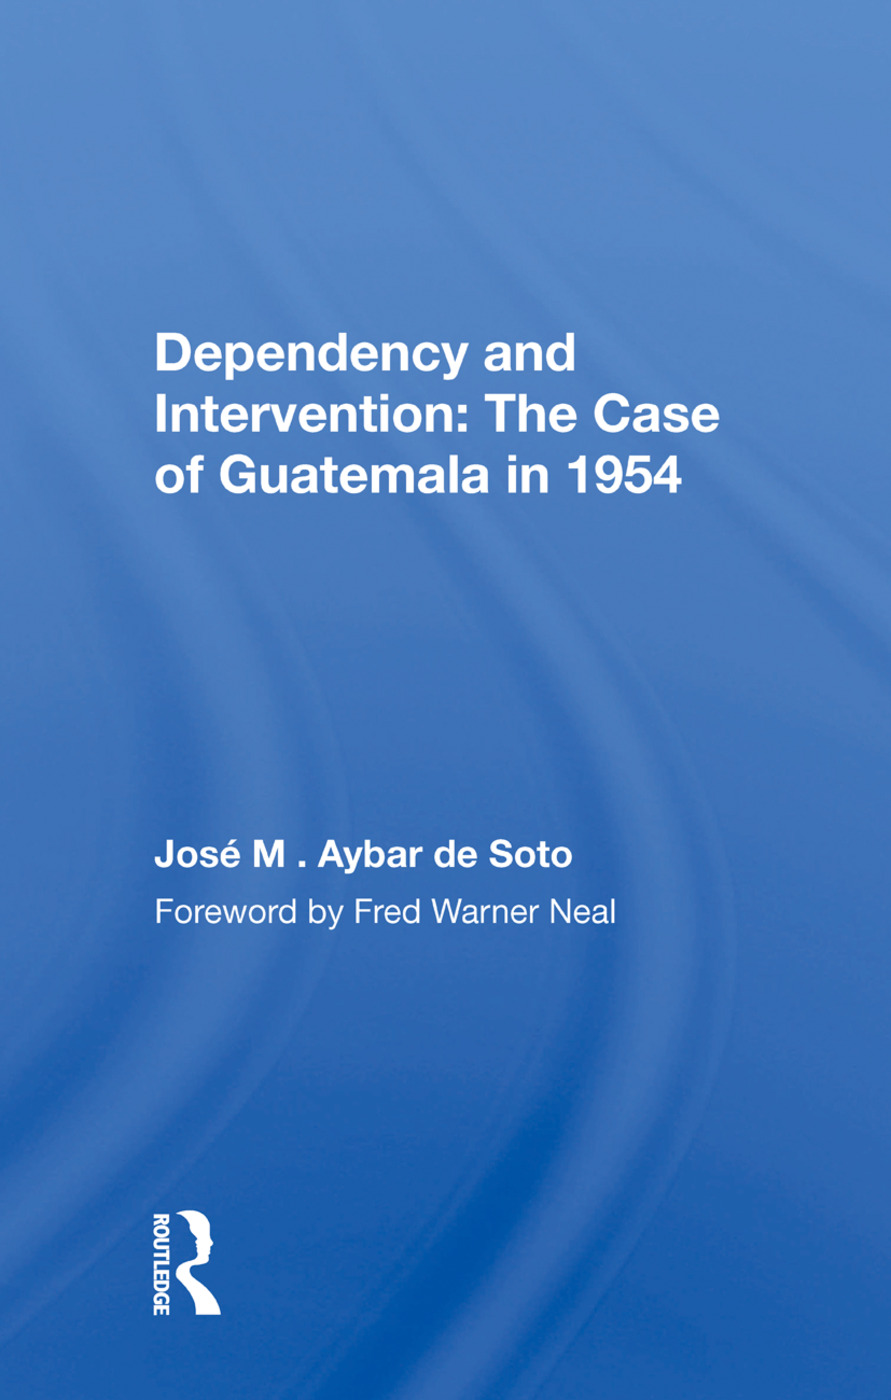 Dependency and Intervention: The Case of Guatemala in 1954